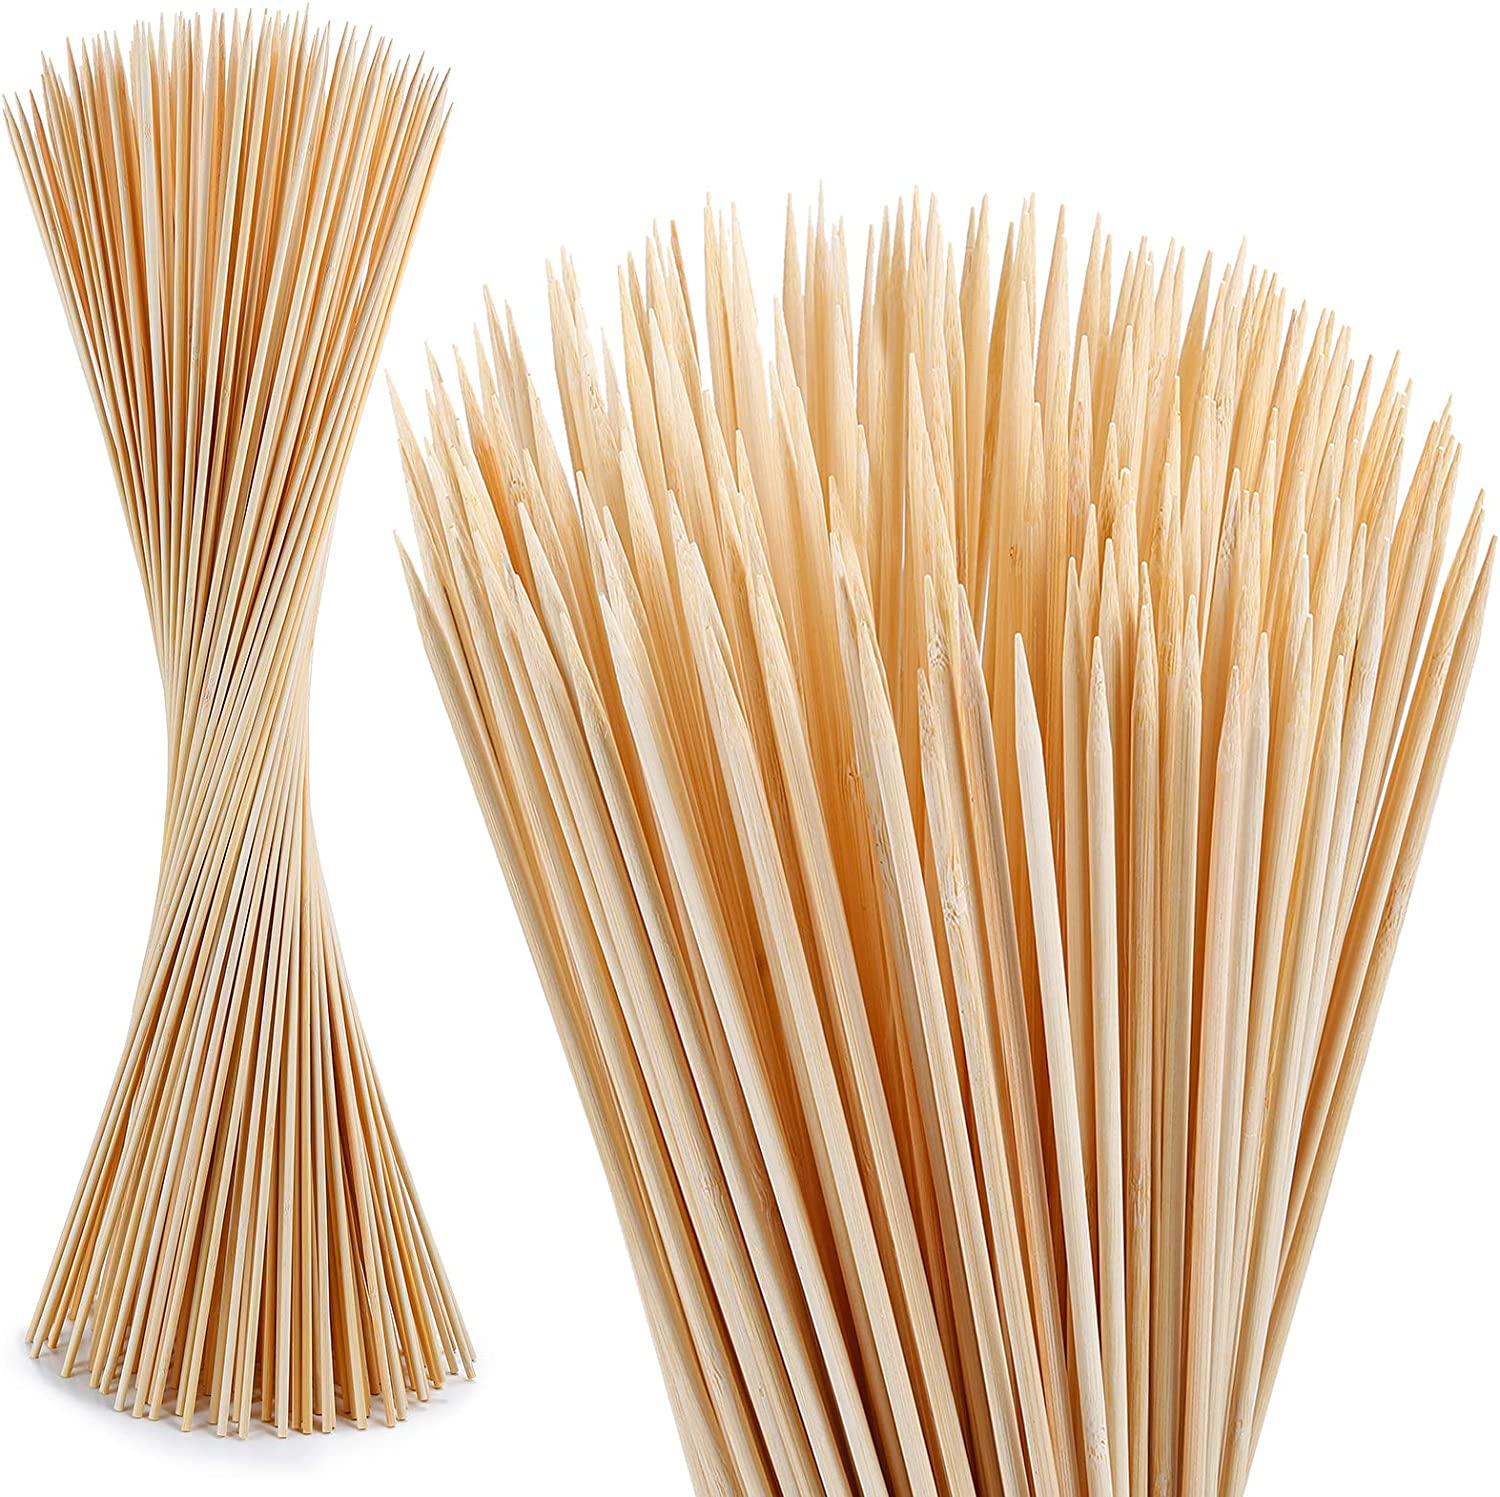 120 PCS Bamboo Marshmallow Roasting SMores Sticks Skewers for Limited time sale F excellence